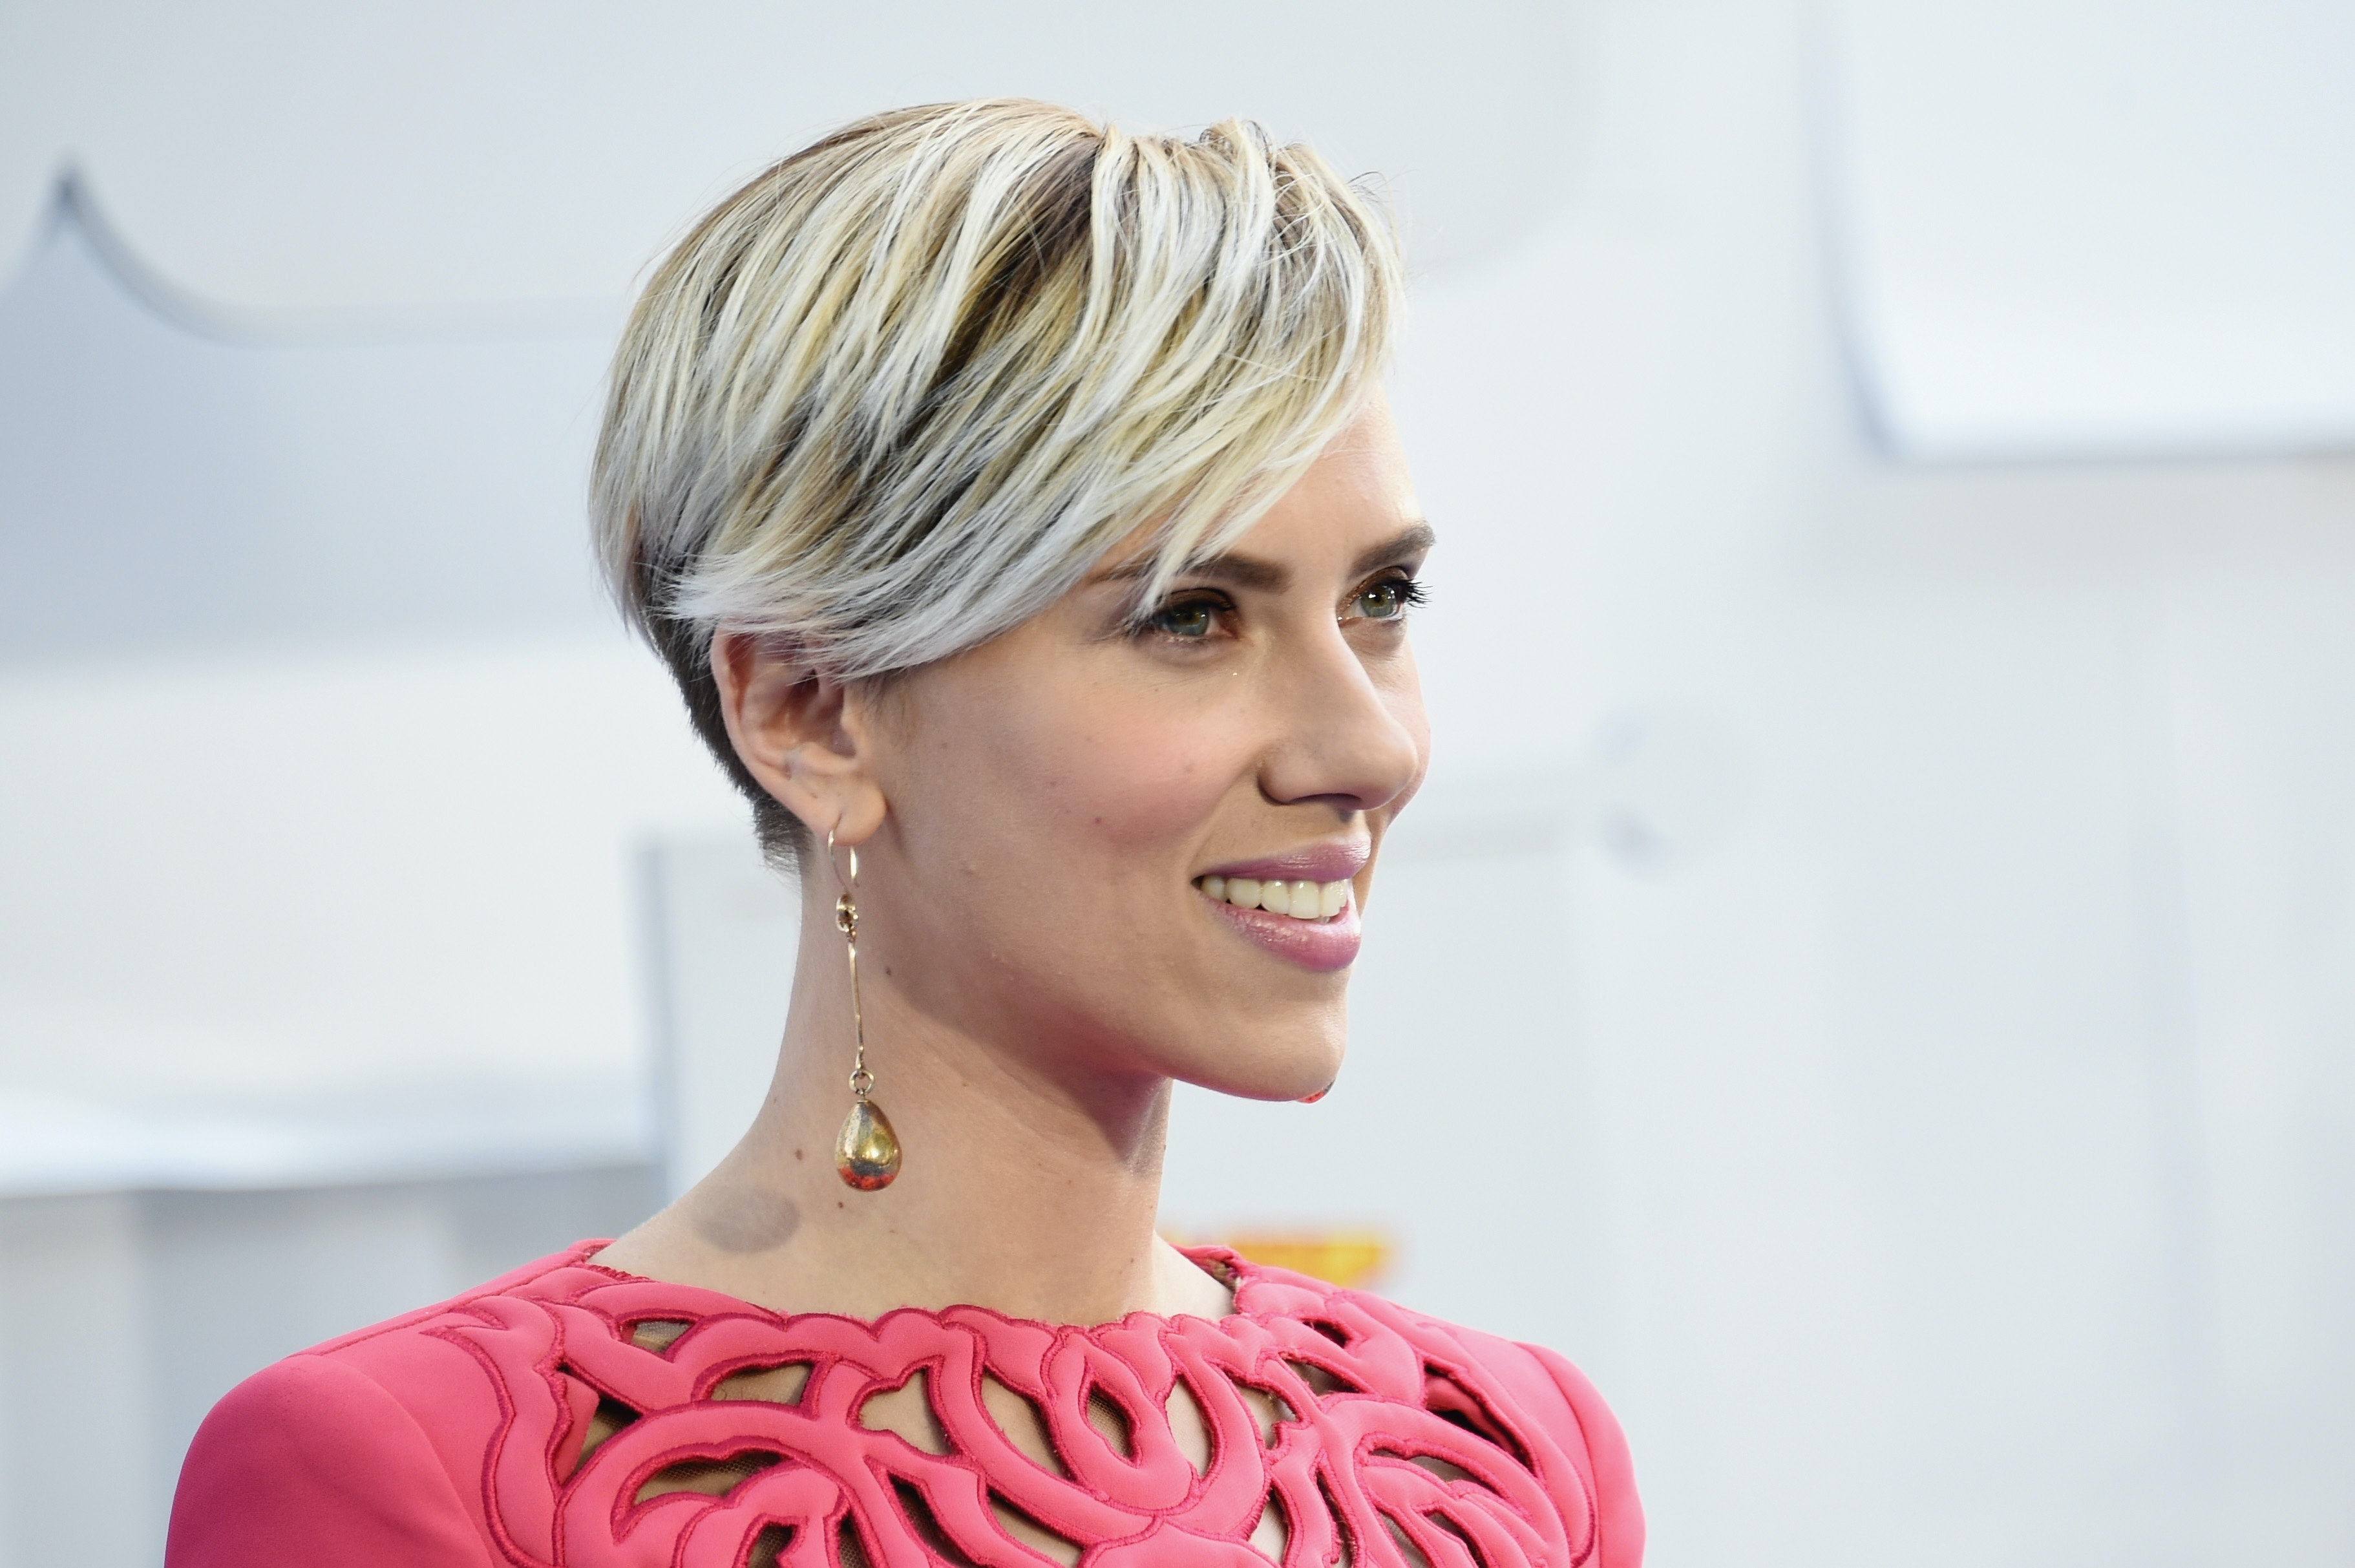 Scarlett Johansson S Sleek Updo Is Surprisingly Easy To Recreate Here S What You Ll Need